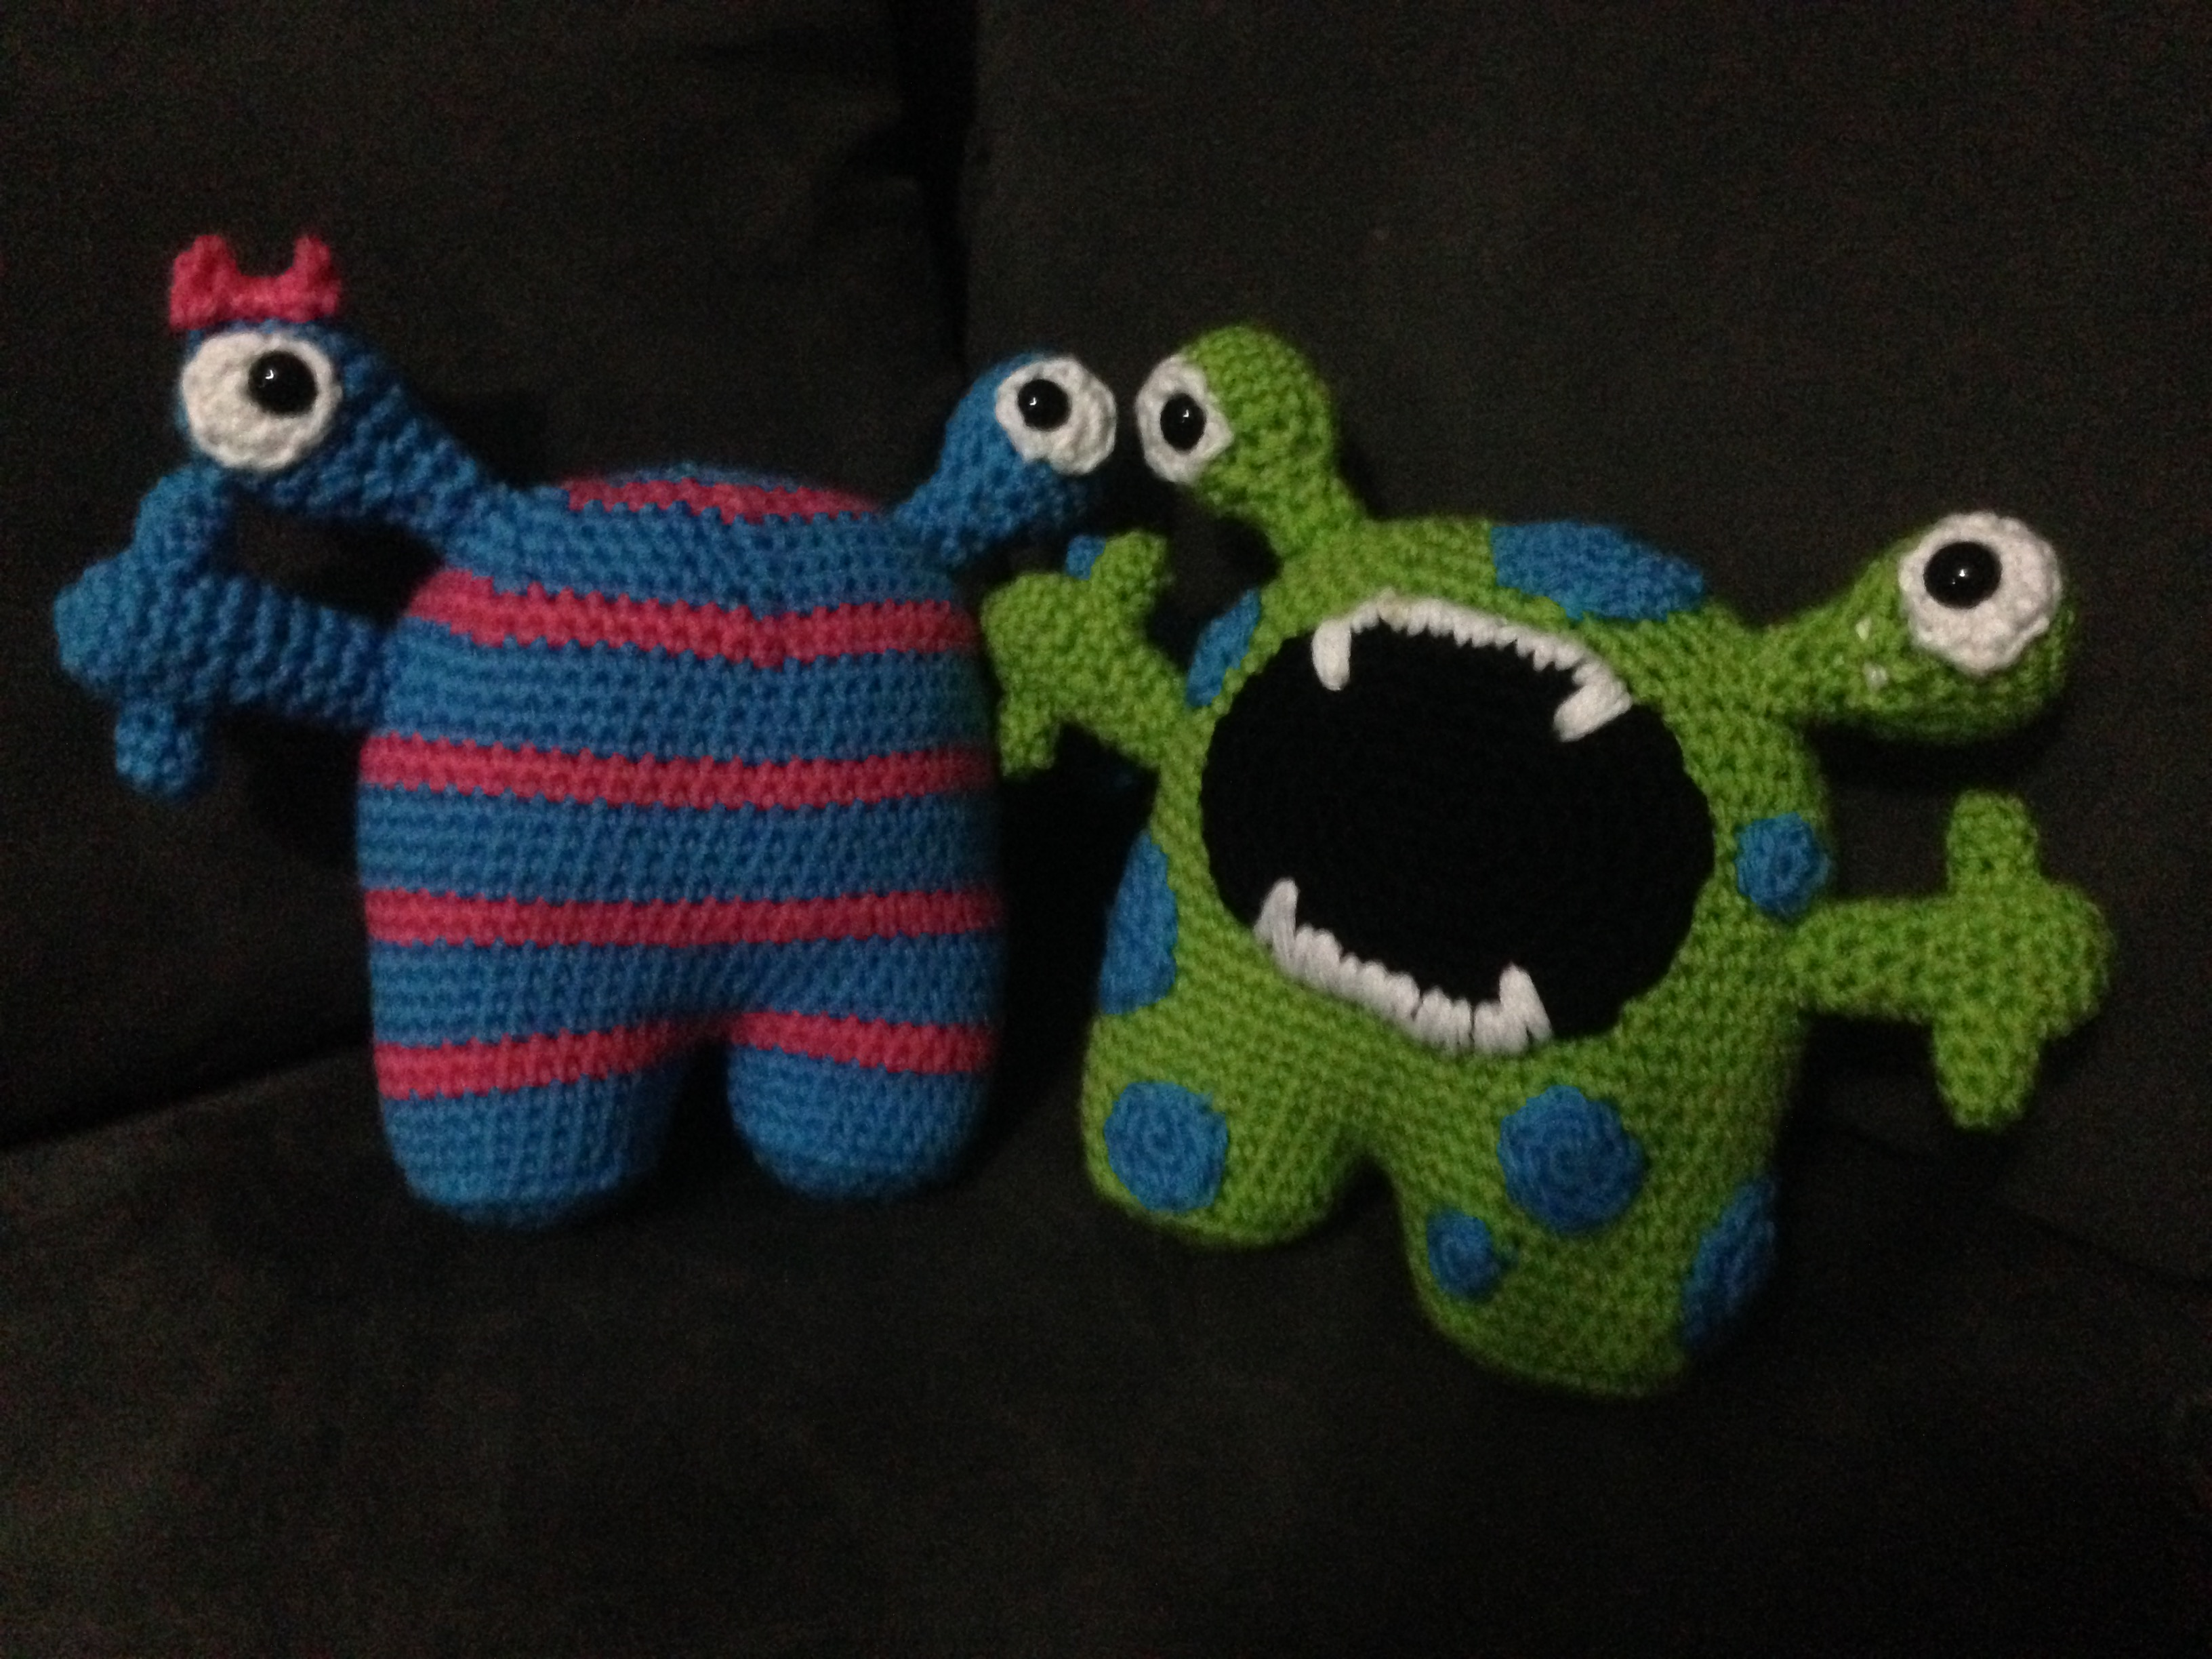 Crocheted monsters